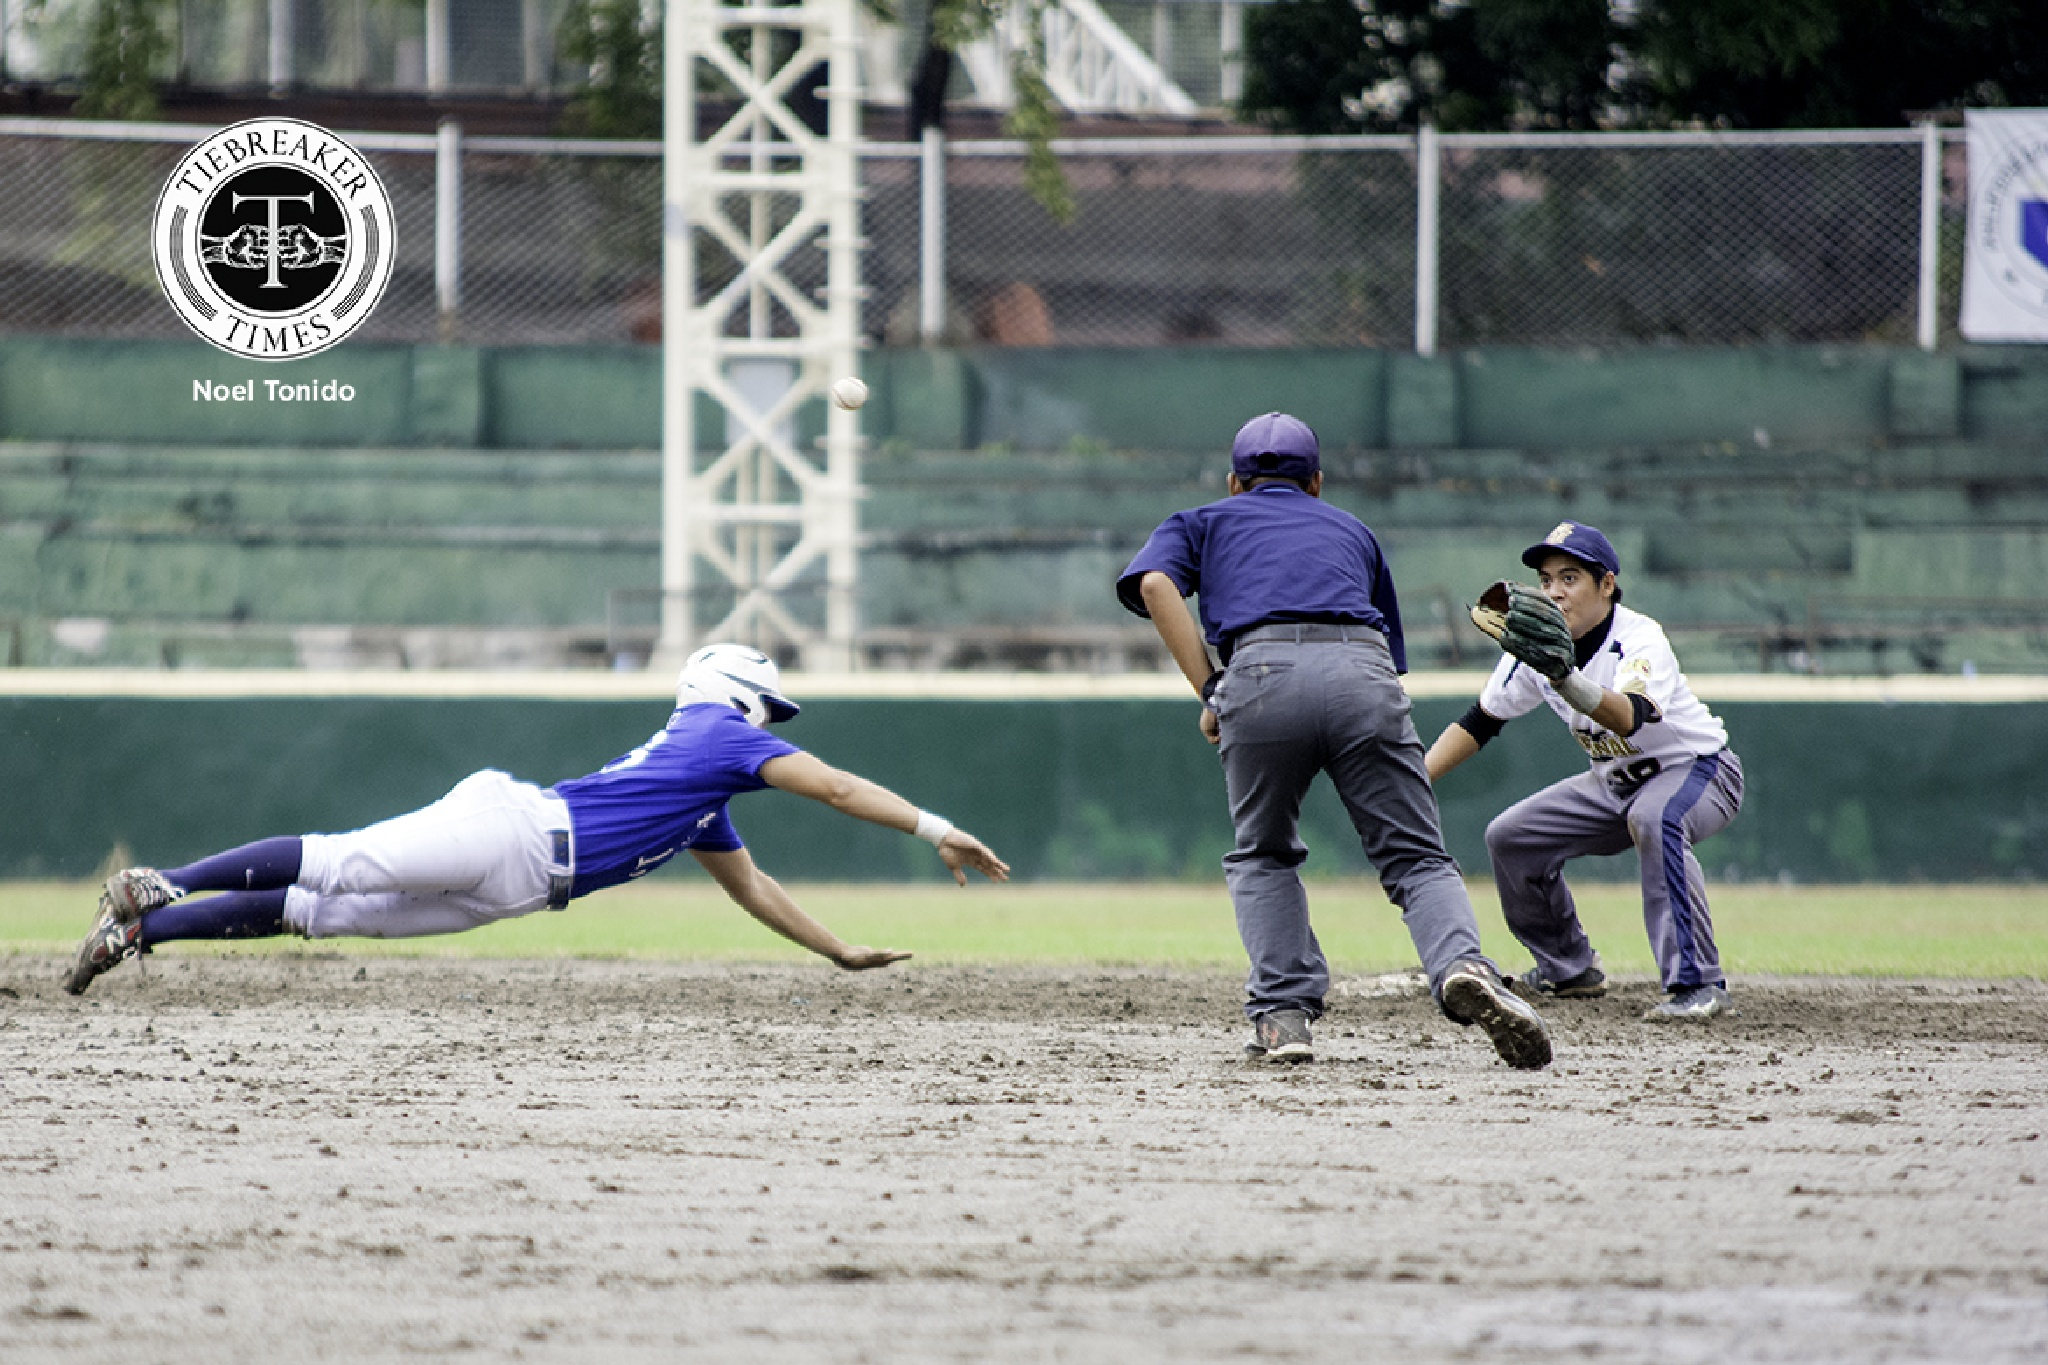 Save or Out?! by Noel Tonido